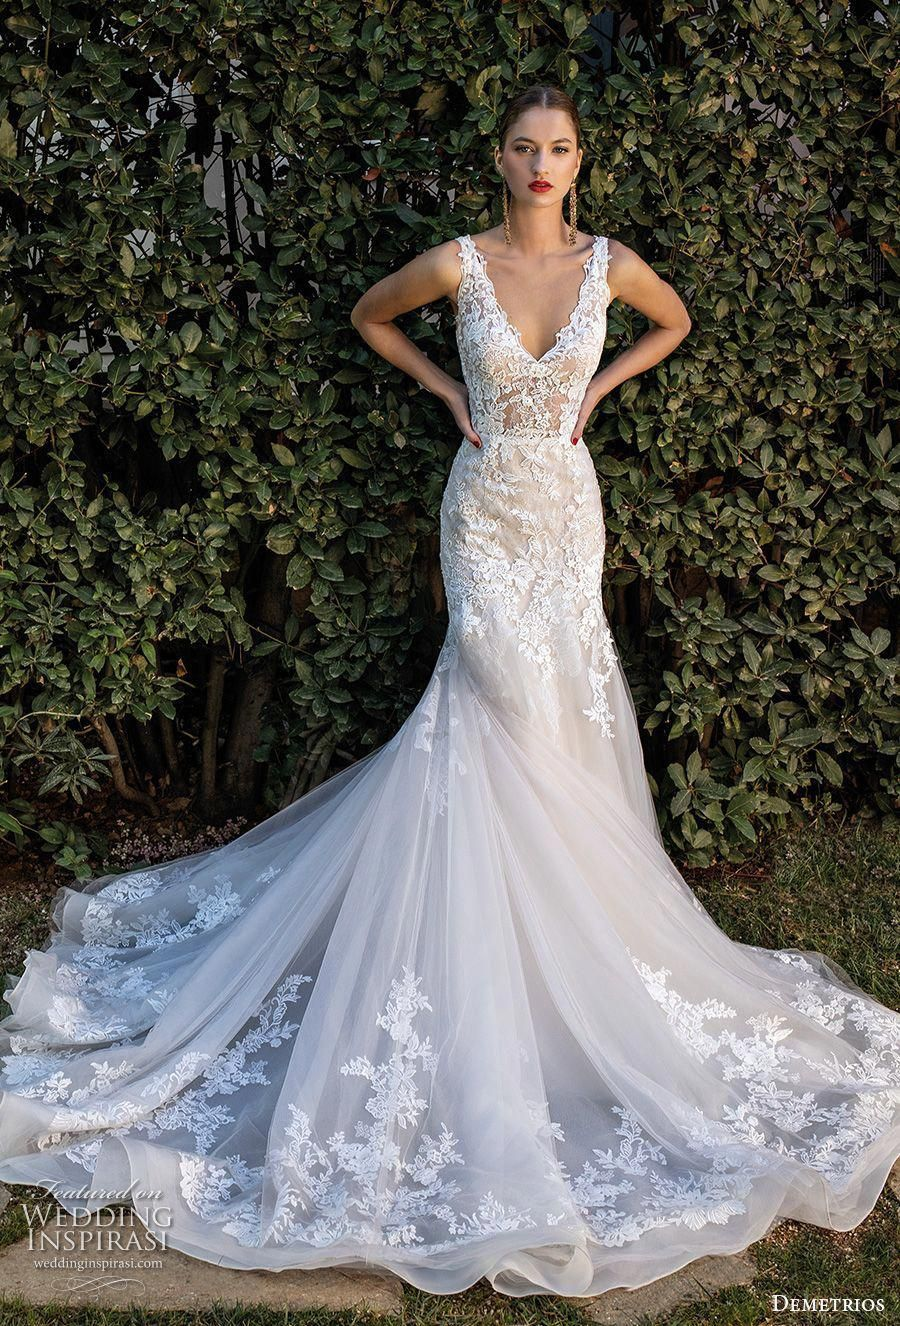 Bridal Dress Can Take 4 To Ten Months To Come From The Maker However There S No Reason To Purchase Wedding Dresses Sydney Wedding Dresses Wedding Dress Styles [ 1326 x 900 Pixel ]